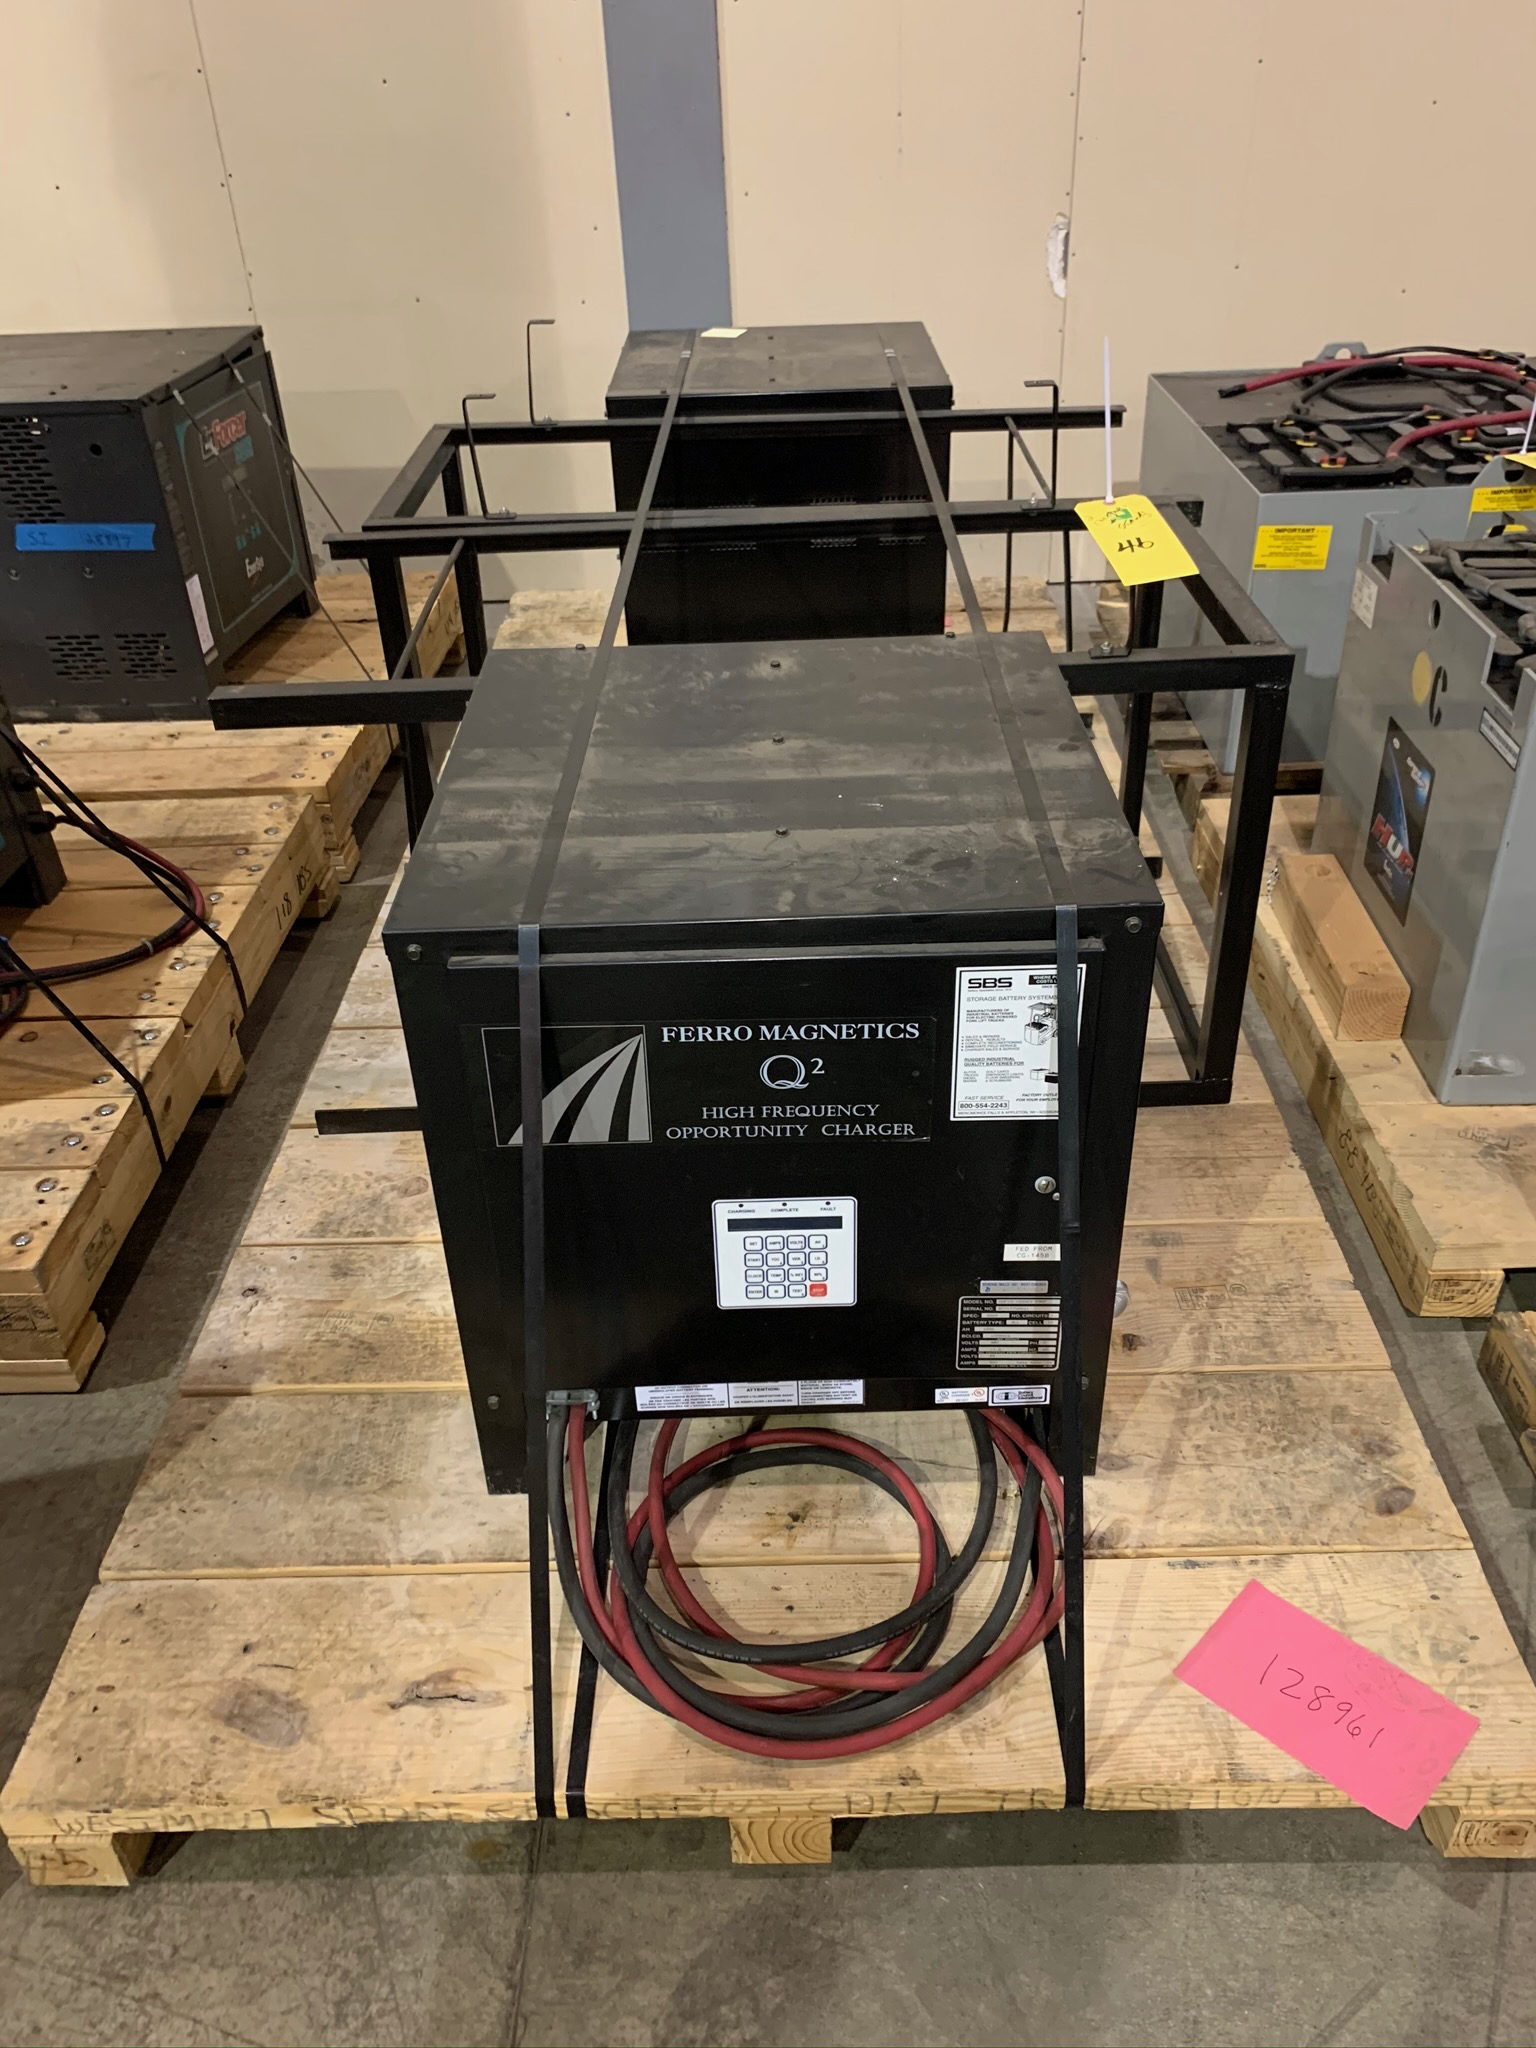 Lot 46 - Lot of (2) Ferro Magnetics Q2 High Frequency Battery Chargers Model OHF12-1200E3 FMHF S/N (Rigging F